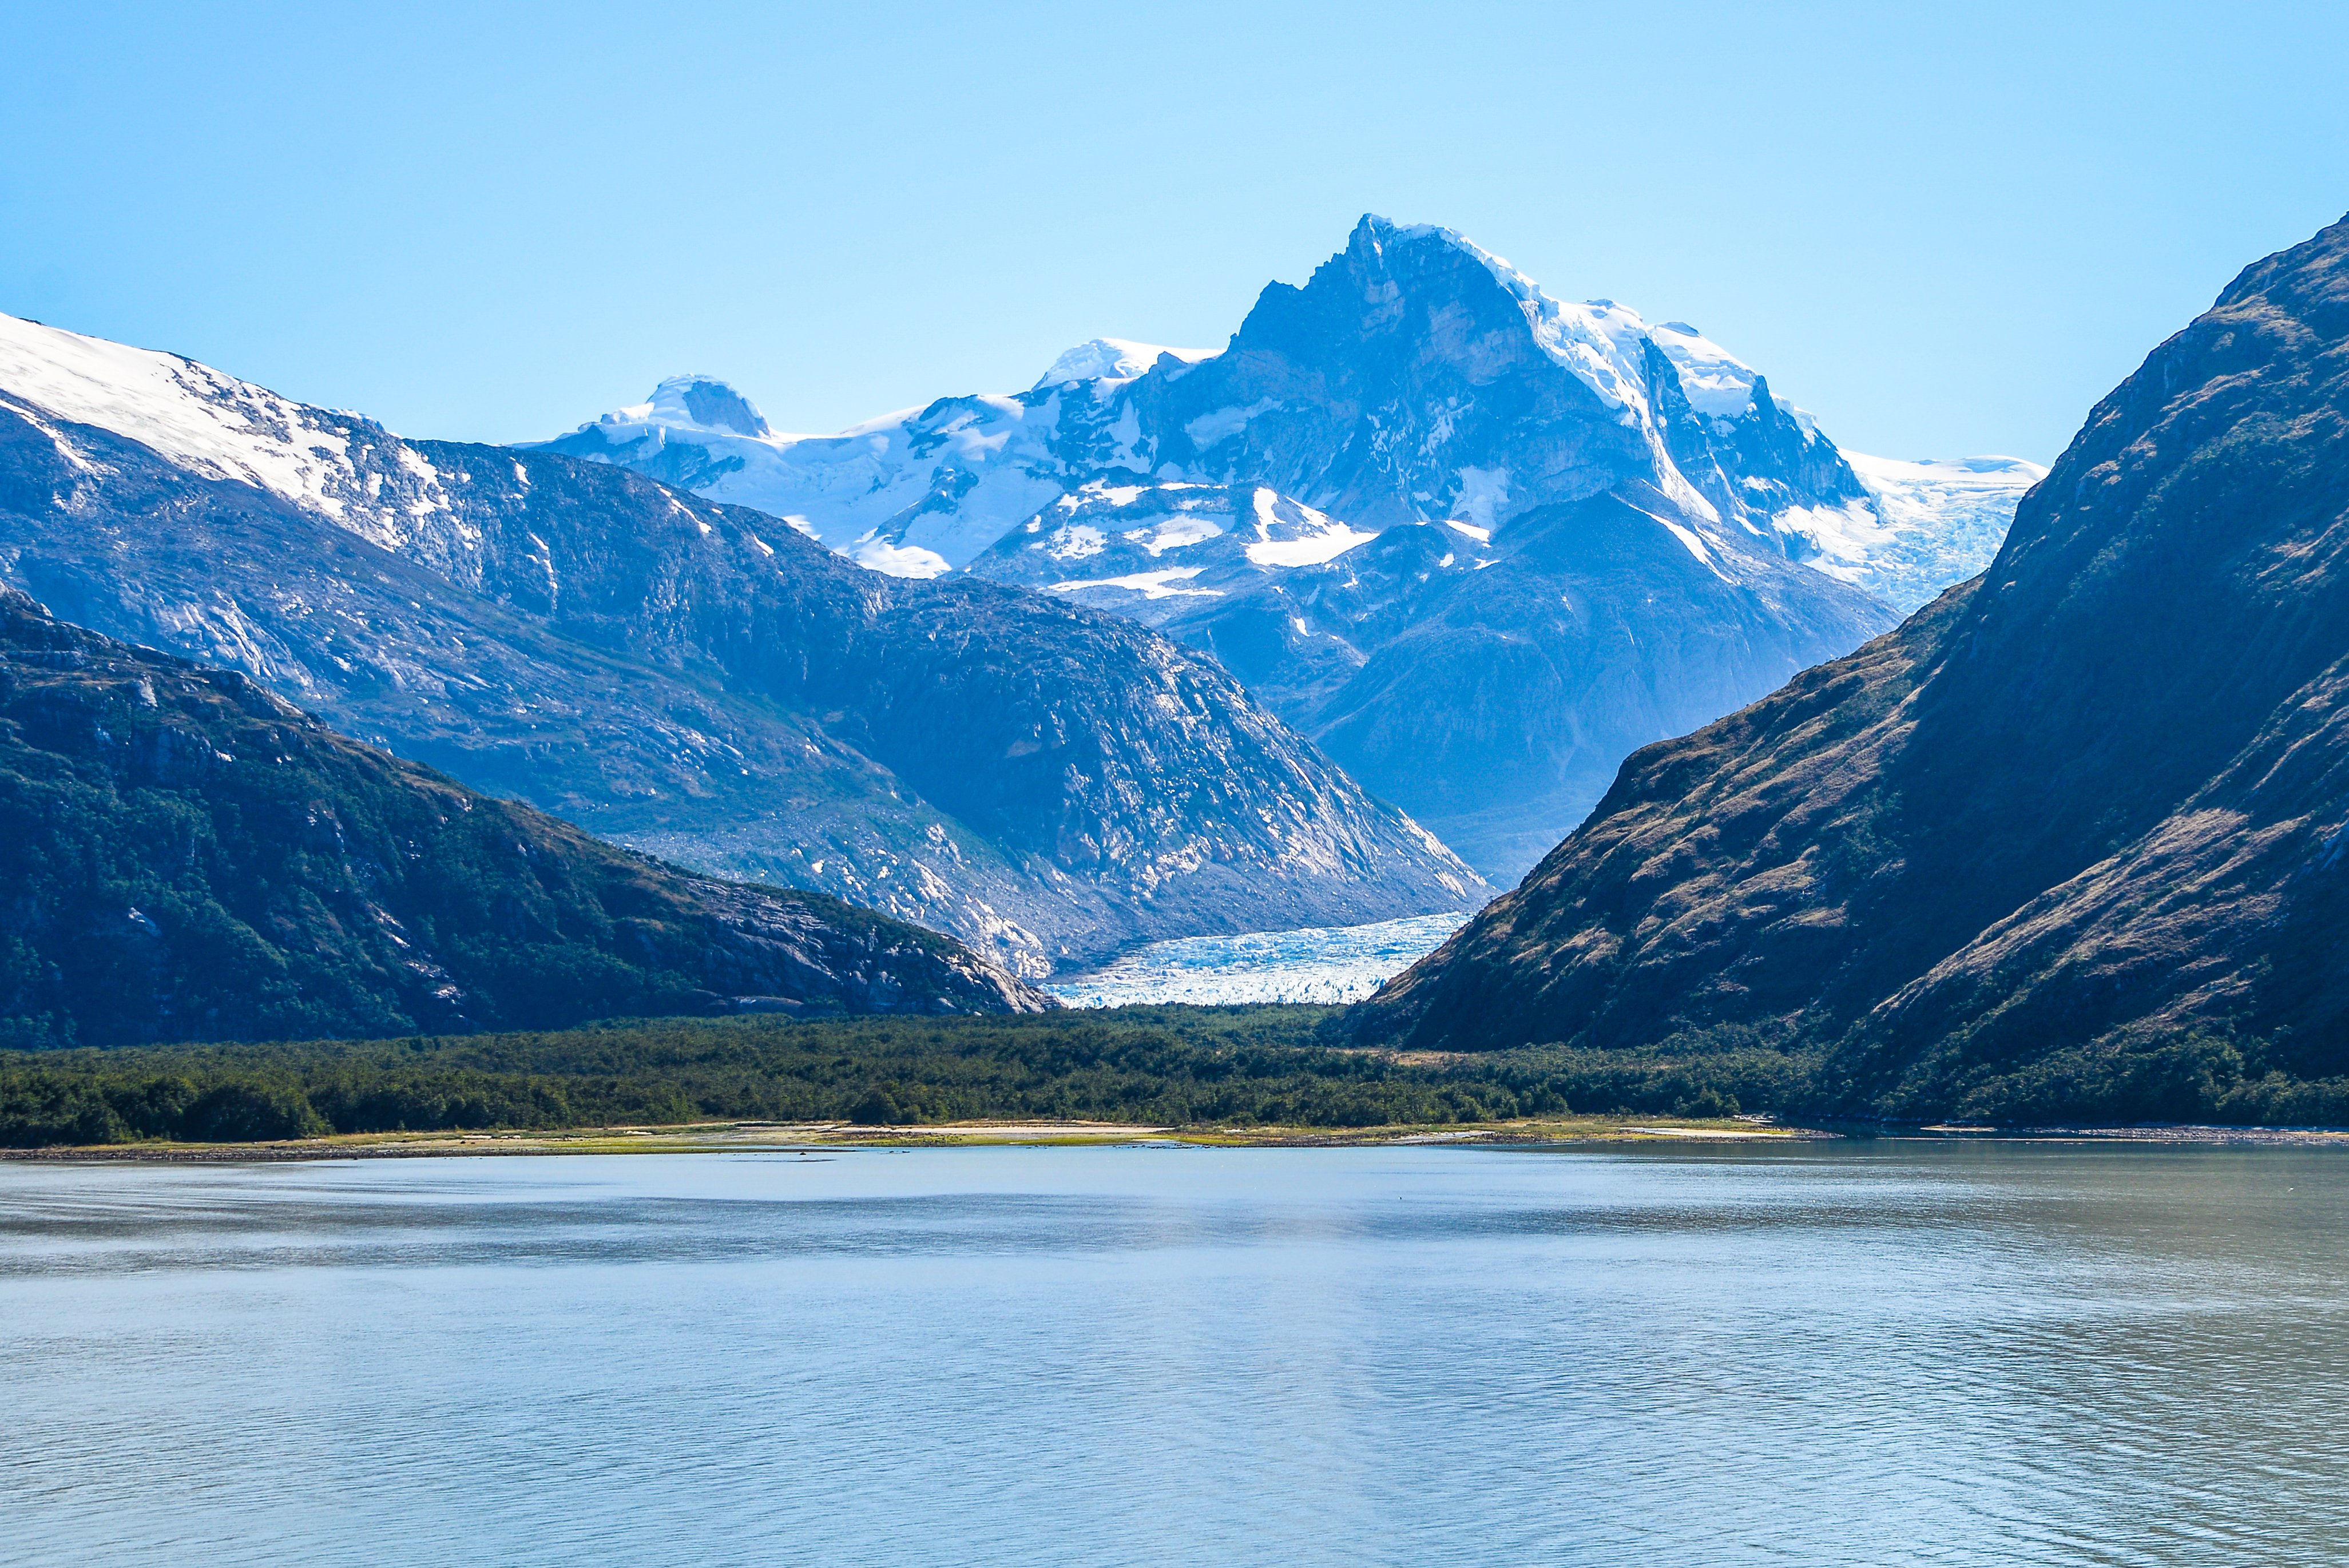 Fjords and channels of Chile